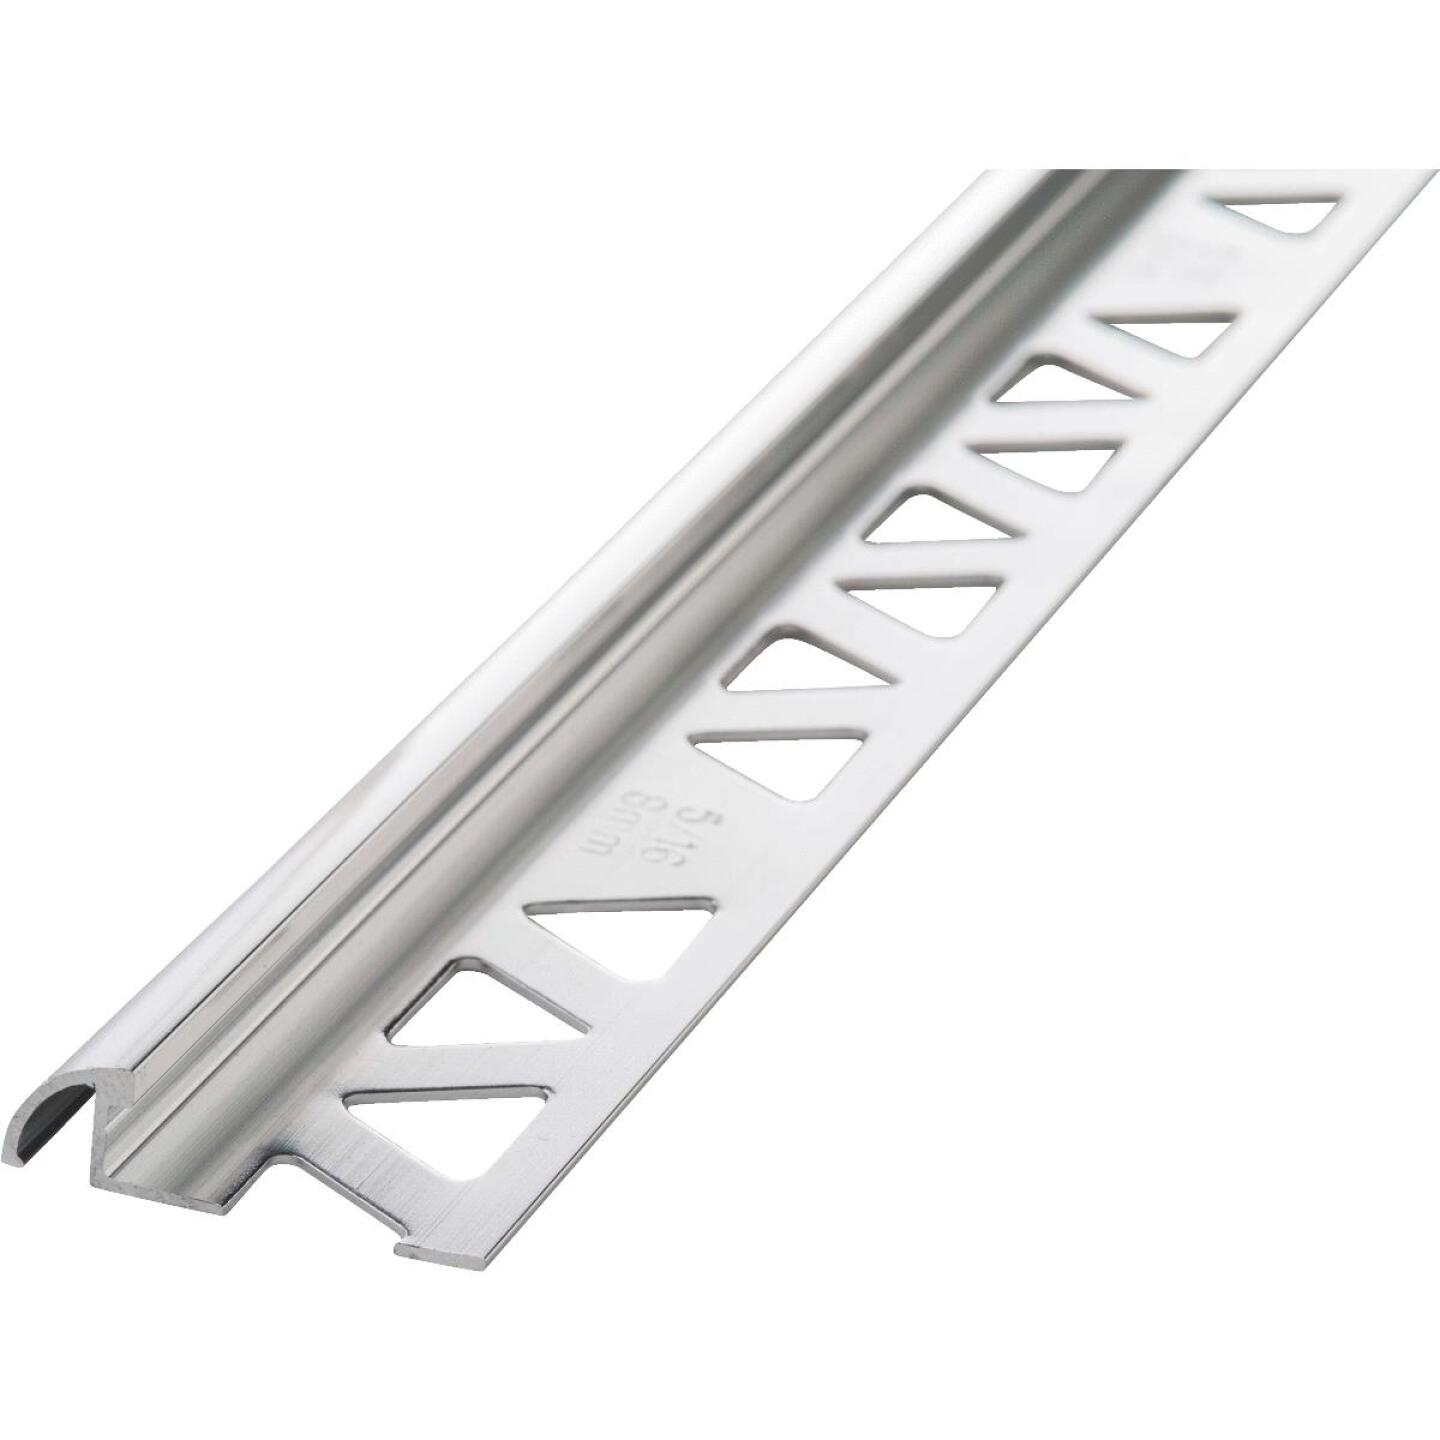 M D Building Products 3/8 In. x 8 Ft. Bright Clear Aluminum Bullnose Tile Edging Image 1